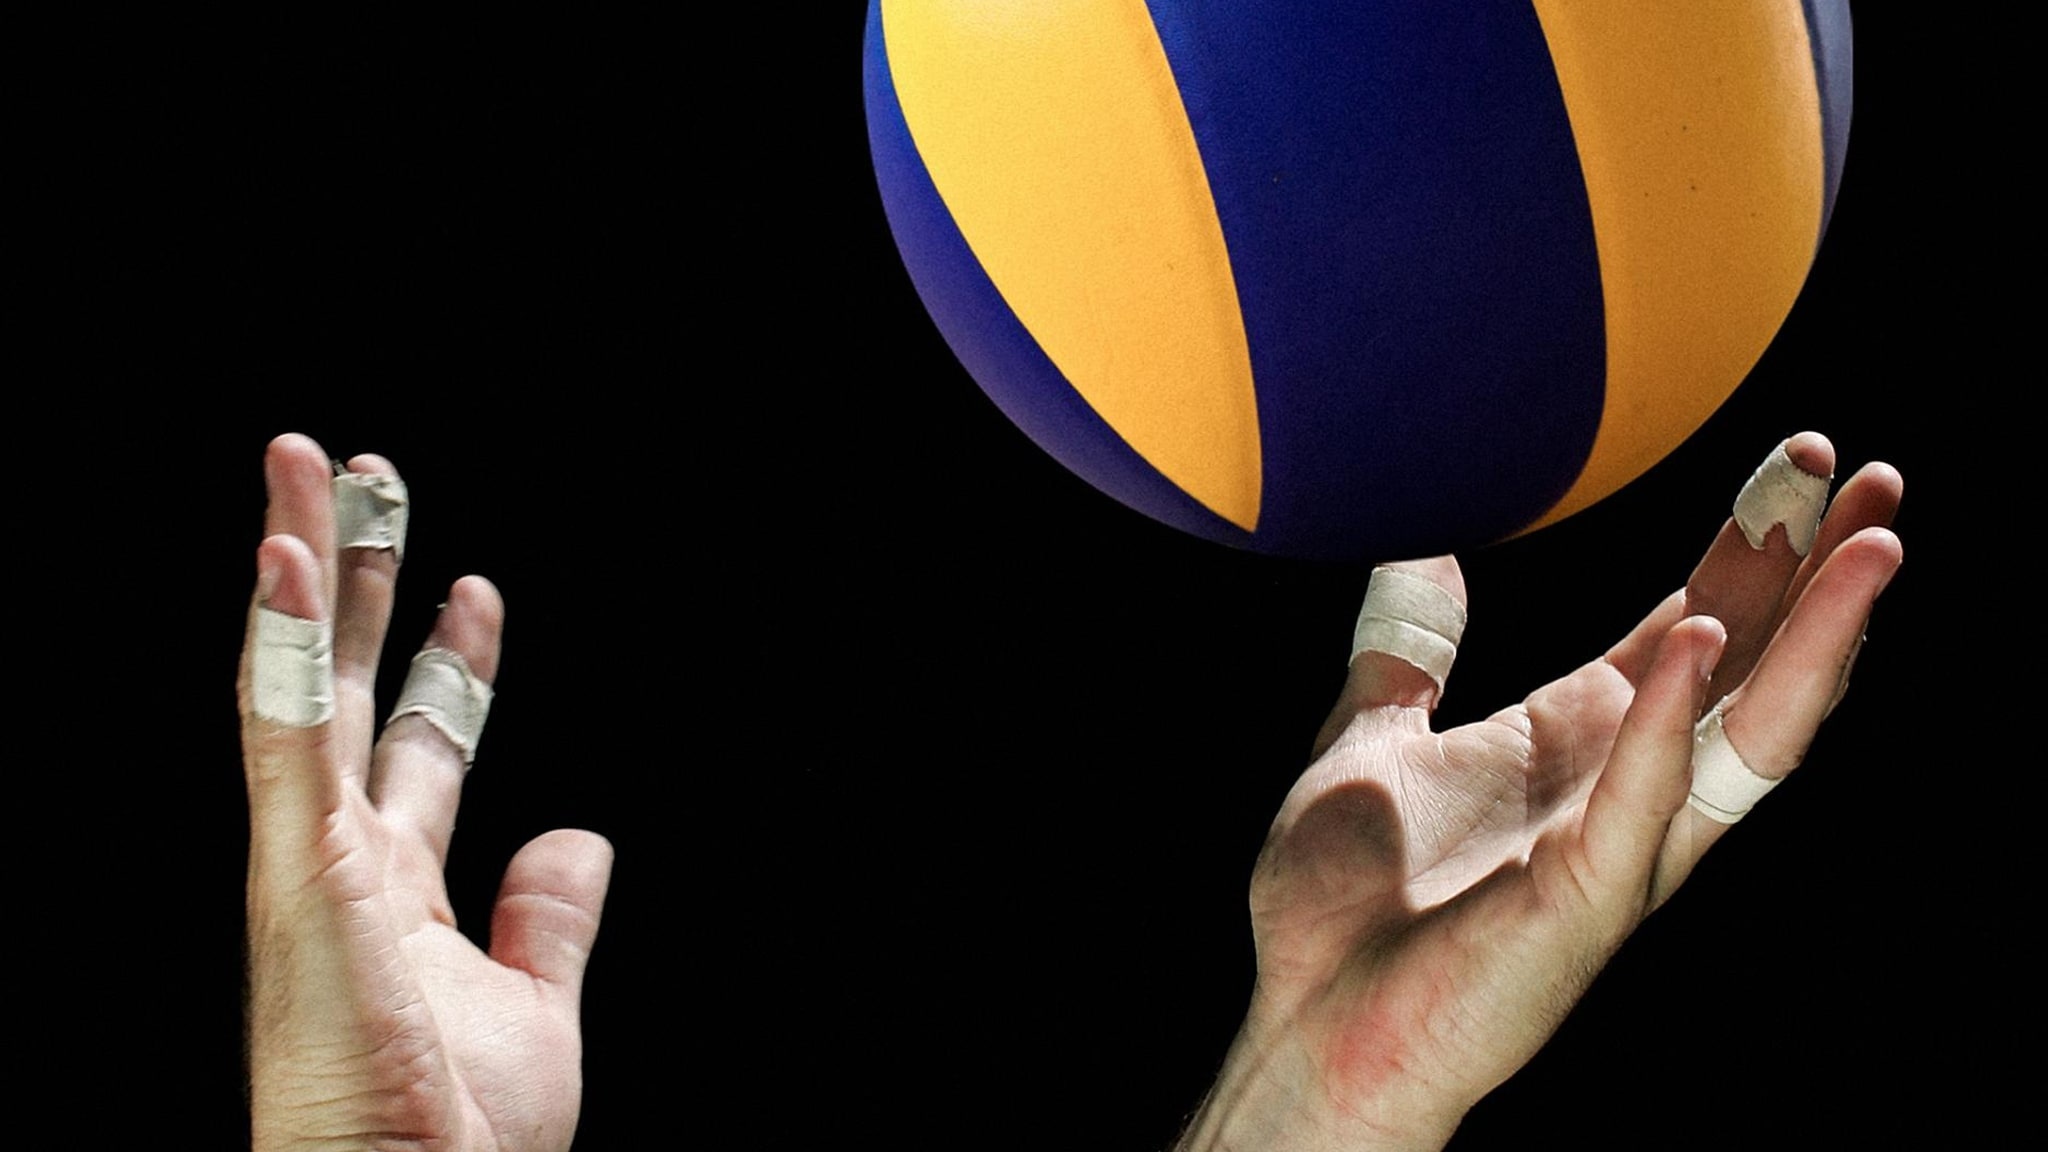 Rai 2 Pallavolo Maschile: Supercoppa 2020 Finale Lube Civitanova - Sir Safety Perugia